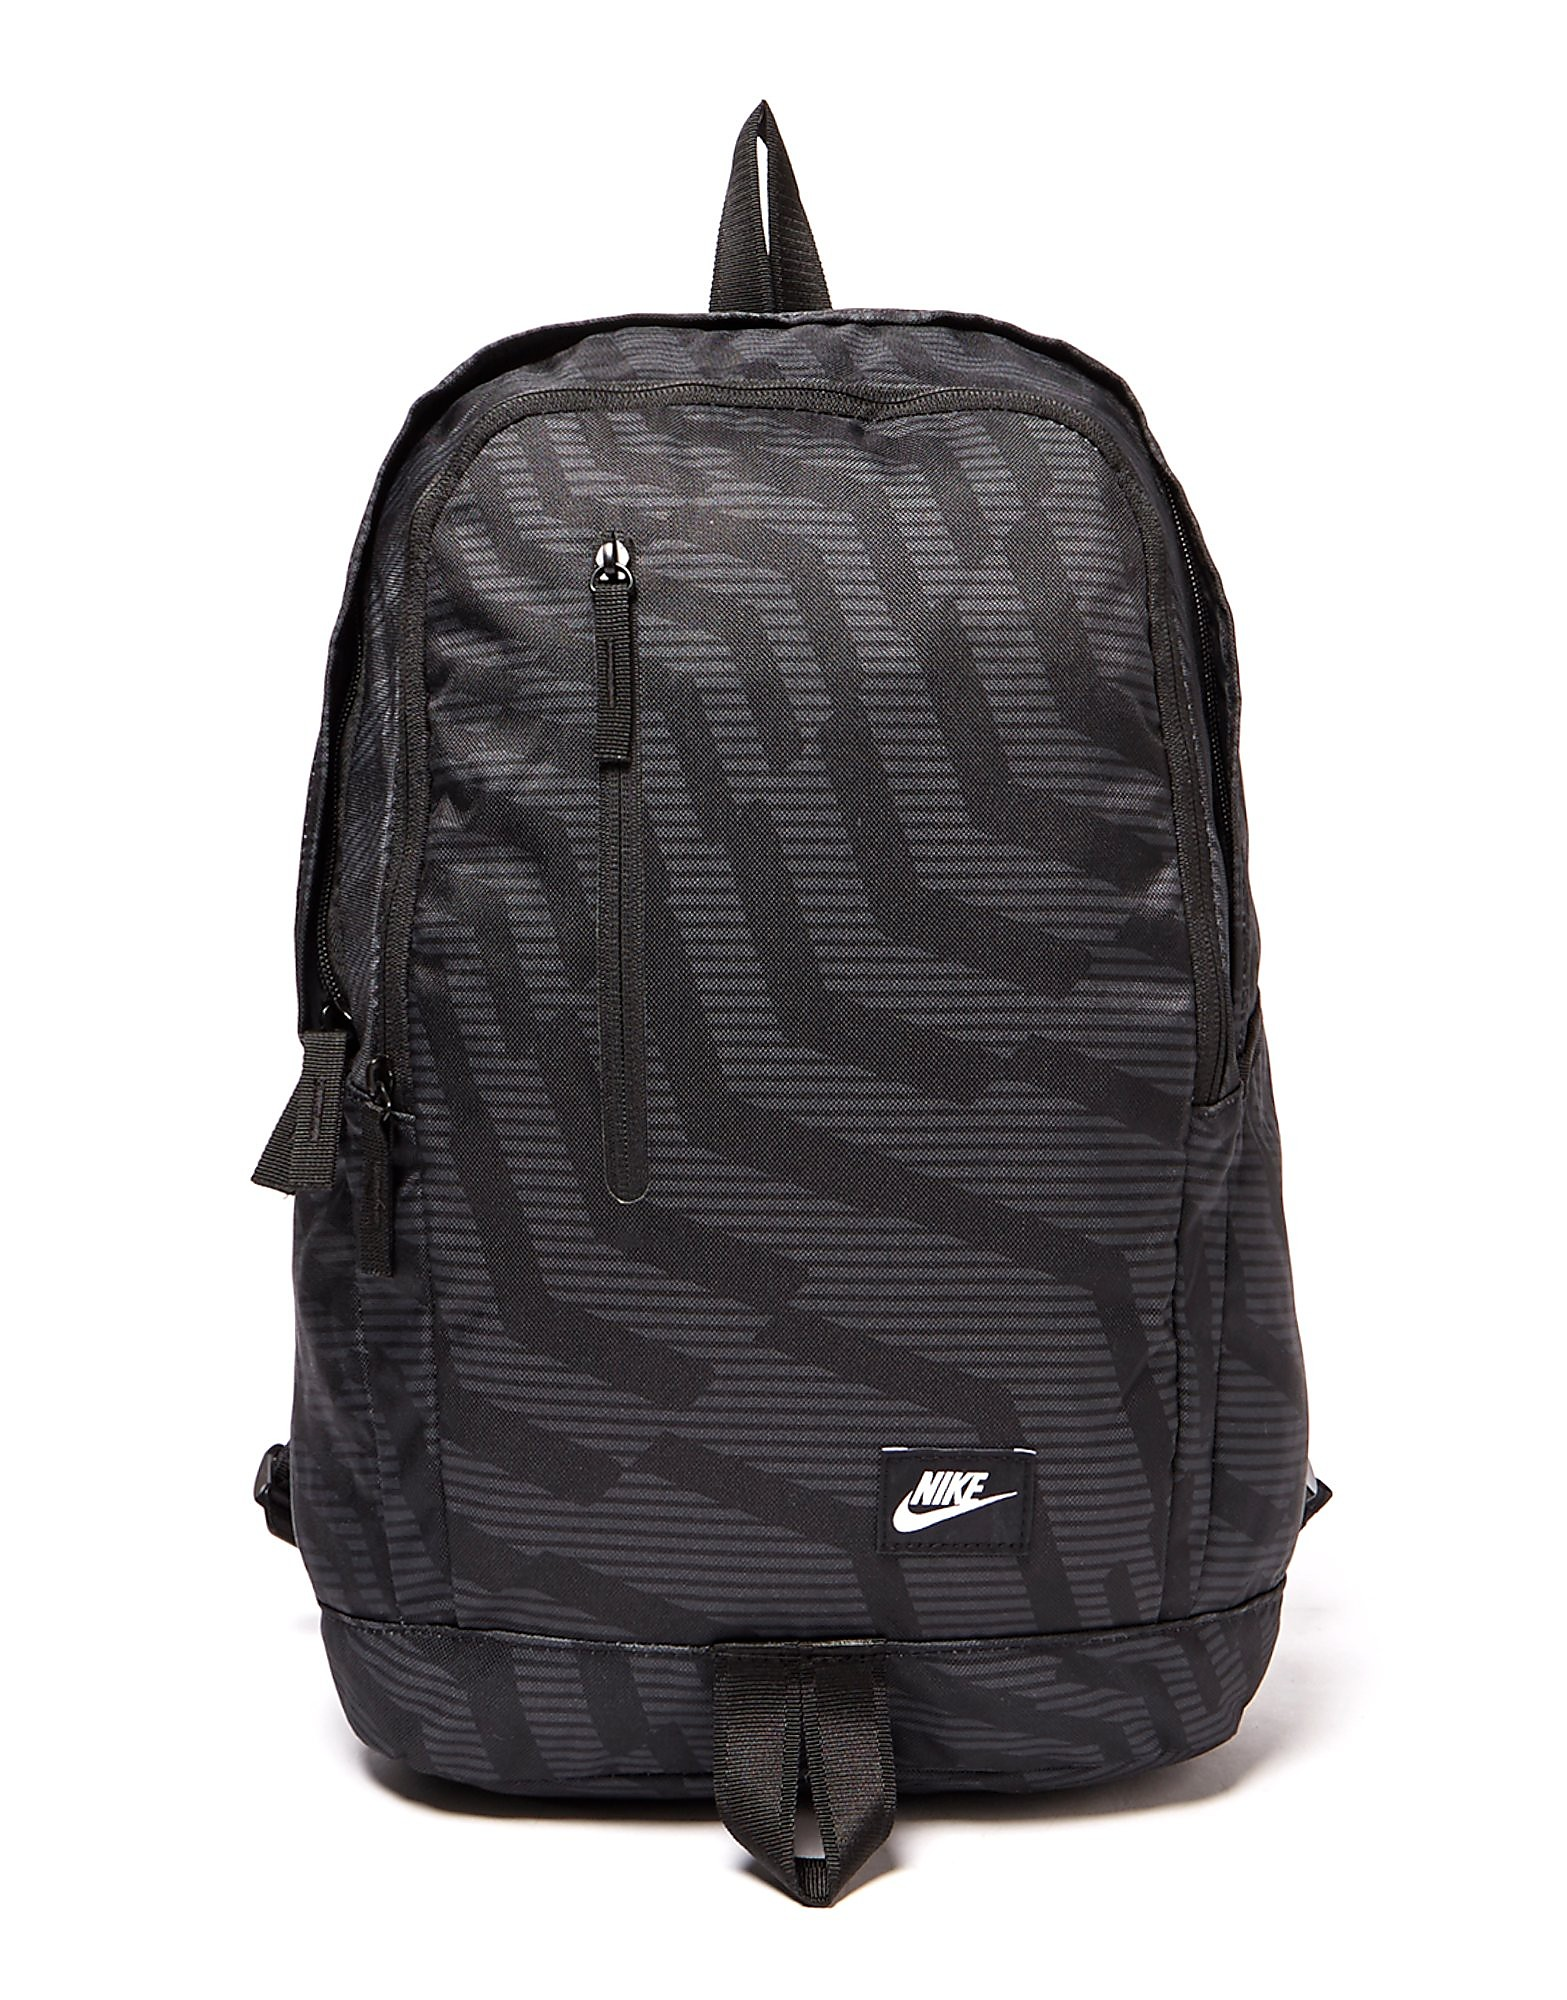 Nike Soleday Camo Backpack